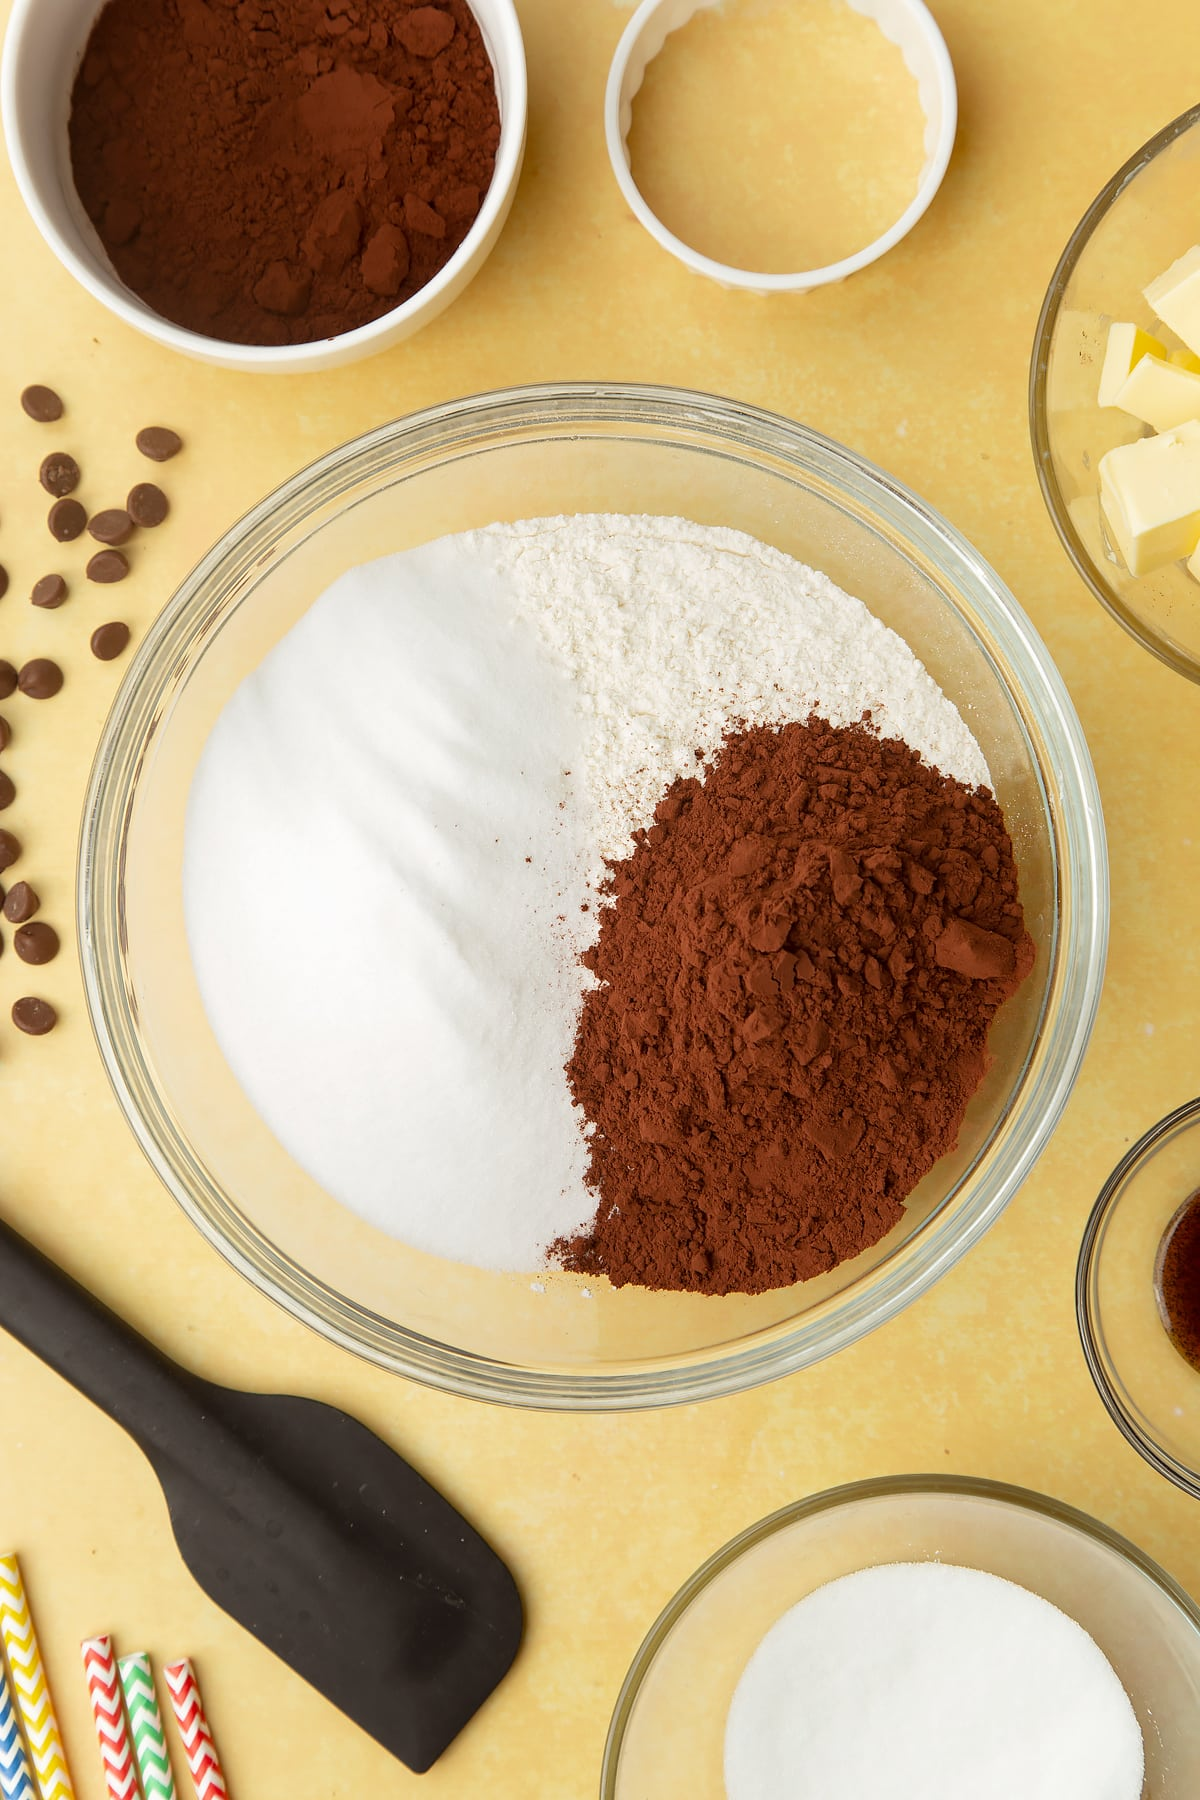 Cocoa, sugar and flour in a bowl. Ingredients to make Nutella sandwich cookies surround the bowl.